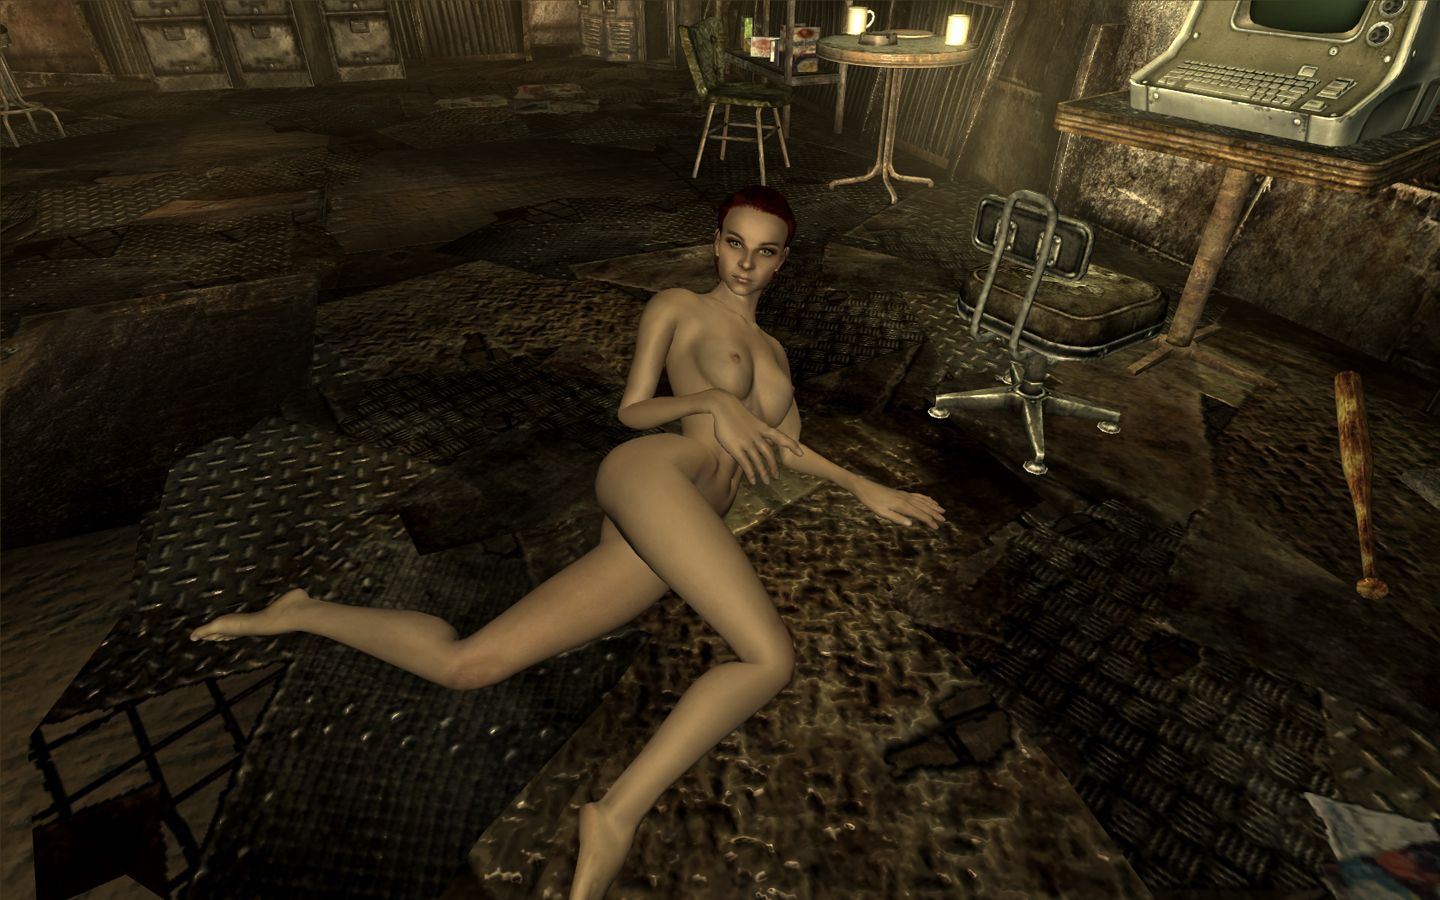 Moriah brown naked in fallout 3 fucks movies